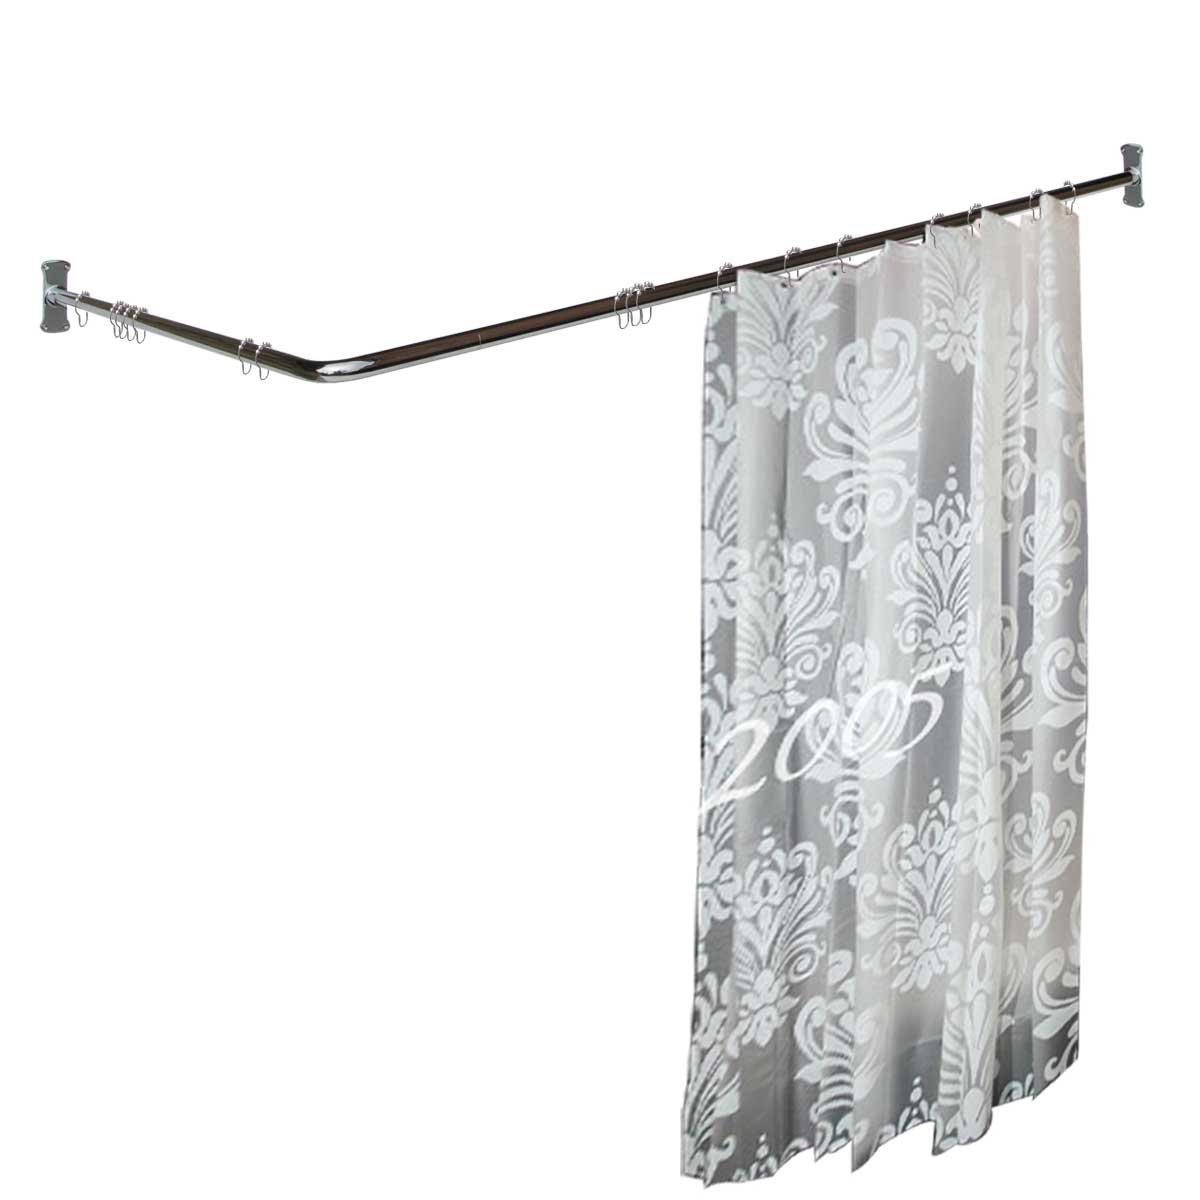 Amazon.com: Two-sided Shower Curtain Rod Chrome Plated Brass 7/8 ...